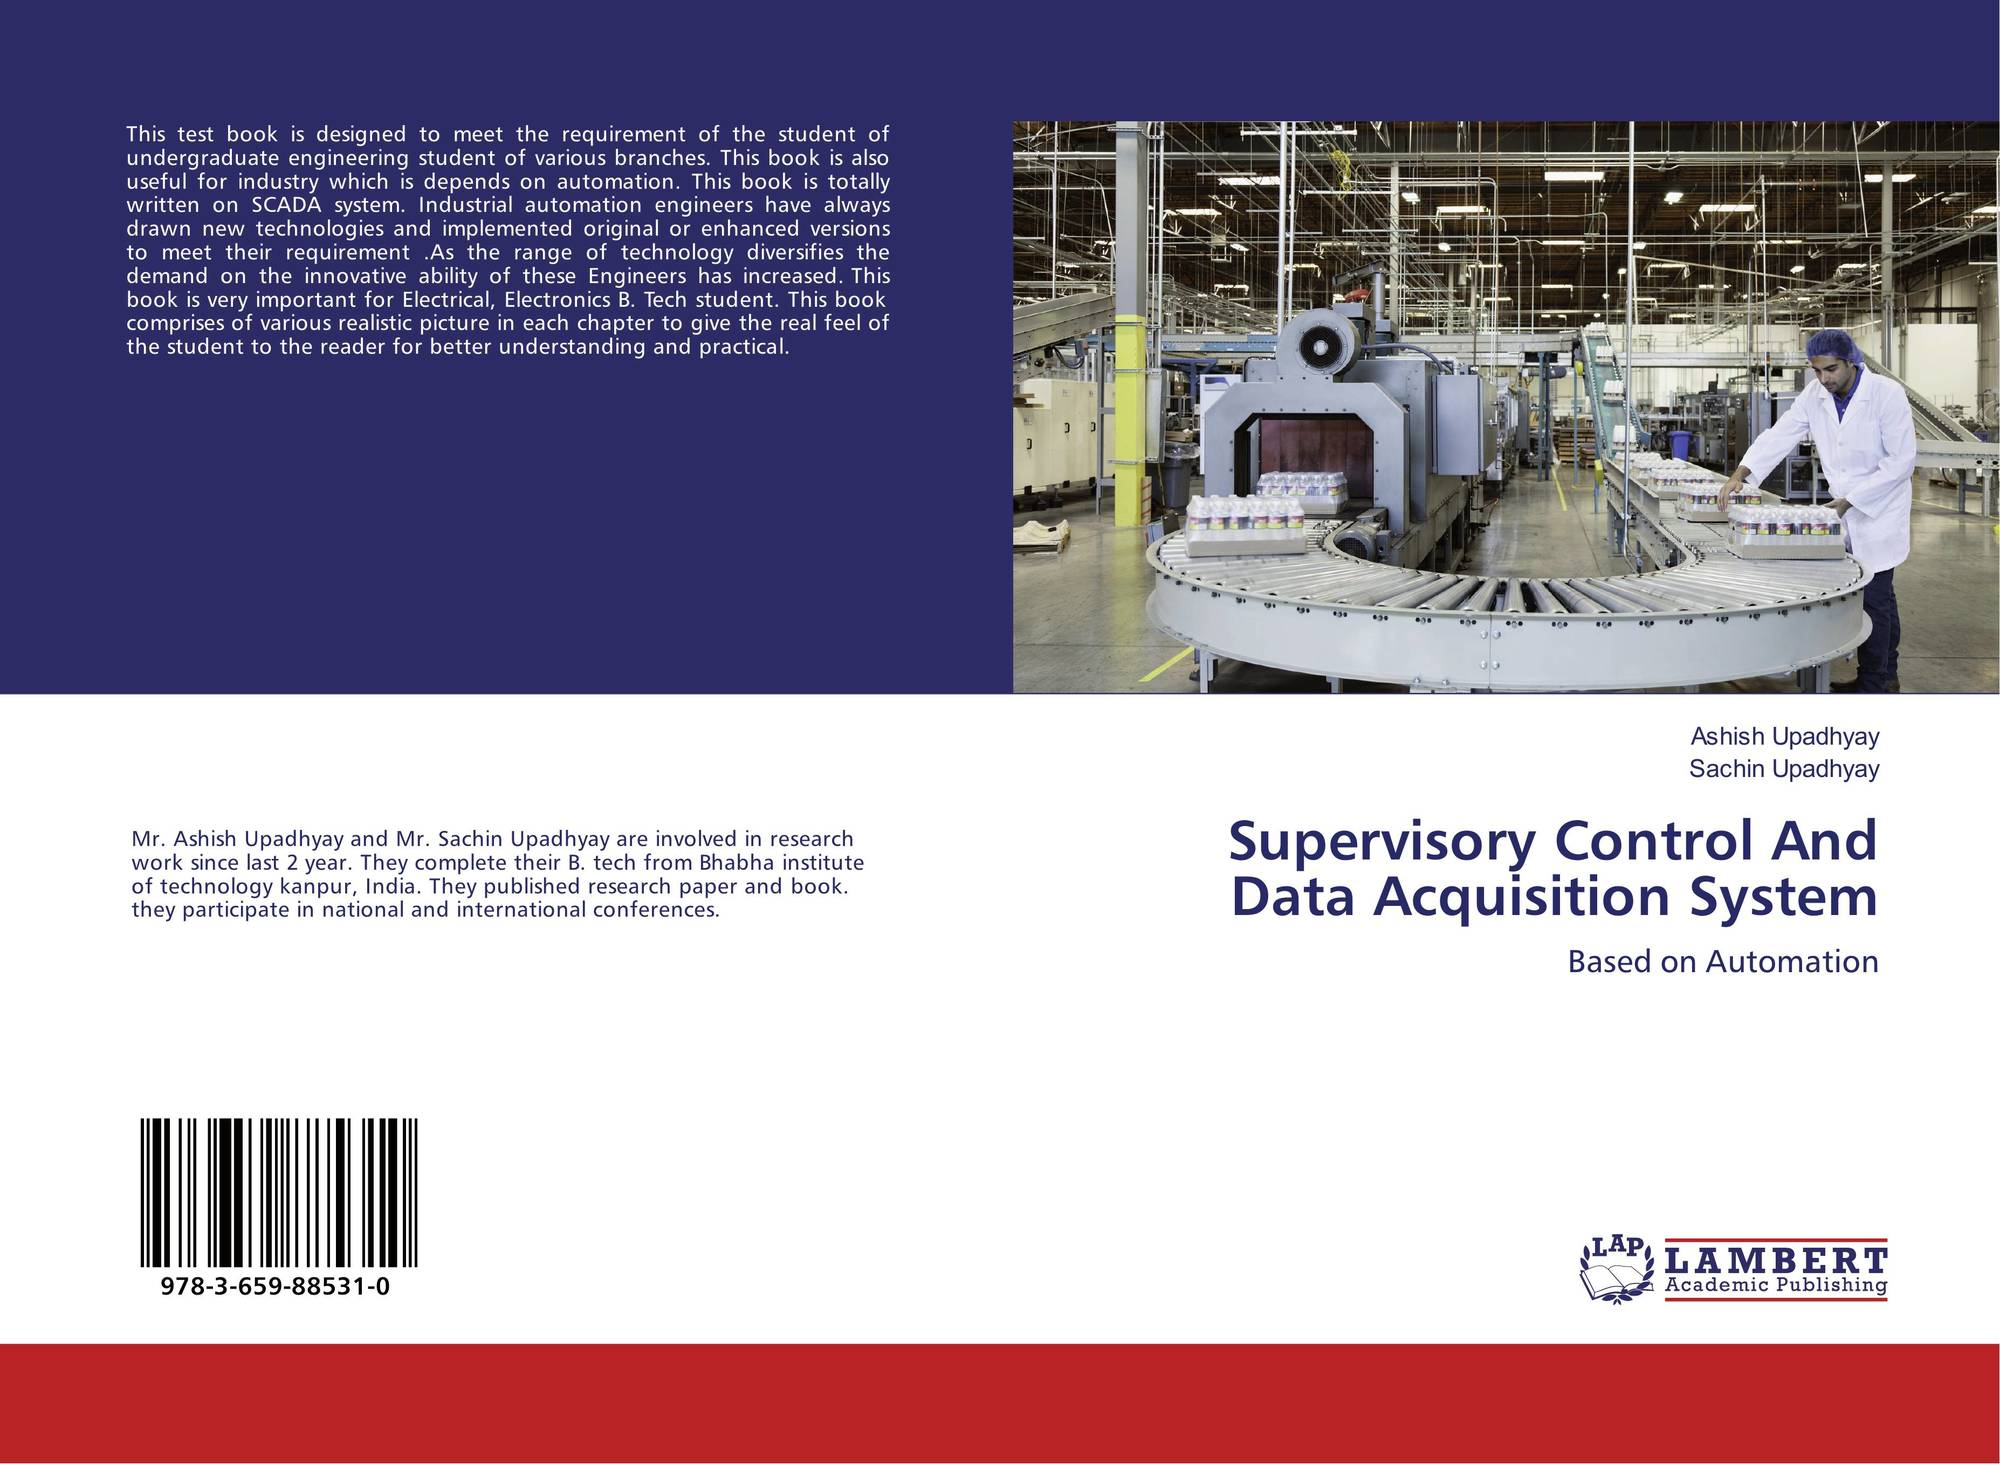 Data Acquisition And Control System : Supervisory control and data acquisition system